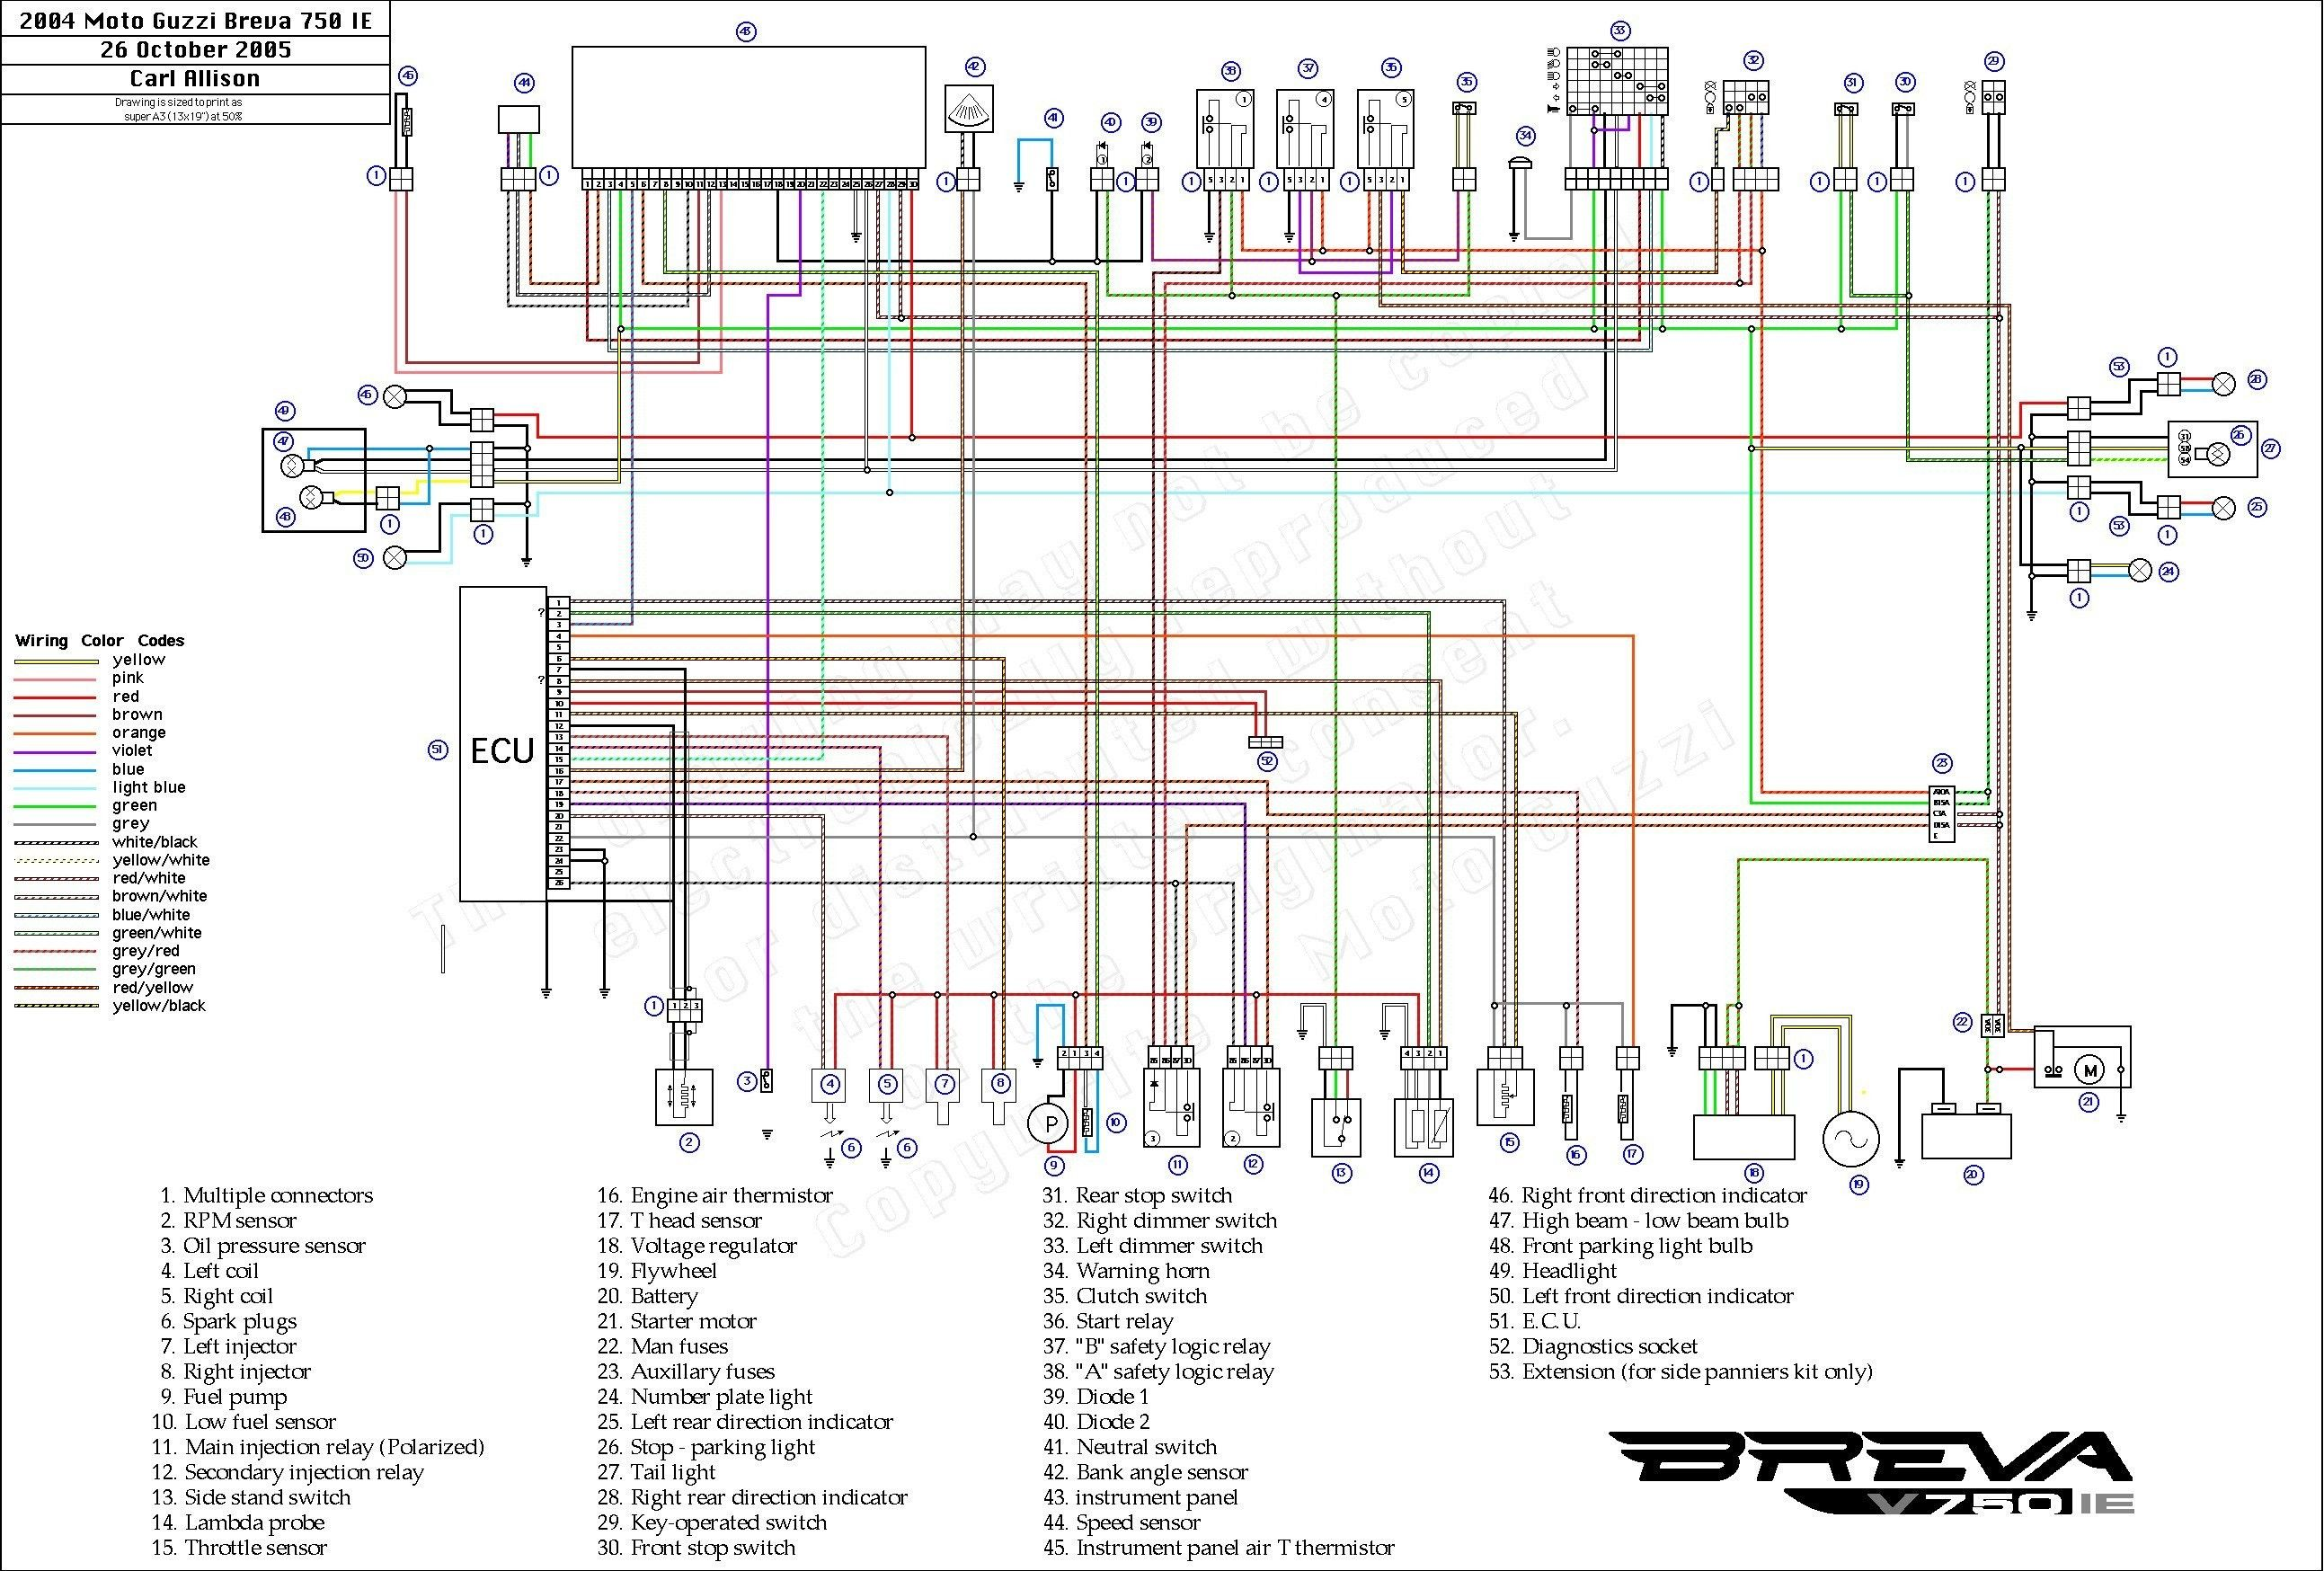 Unique Dimmer Switch Wiring Diagram Manual Diagram Diagramtemplate Diagramsample Ingenieria Electronica Ingenieria Honda Wave